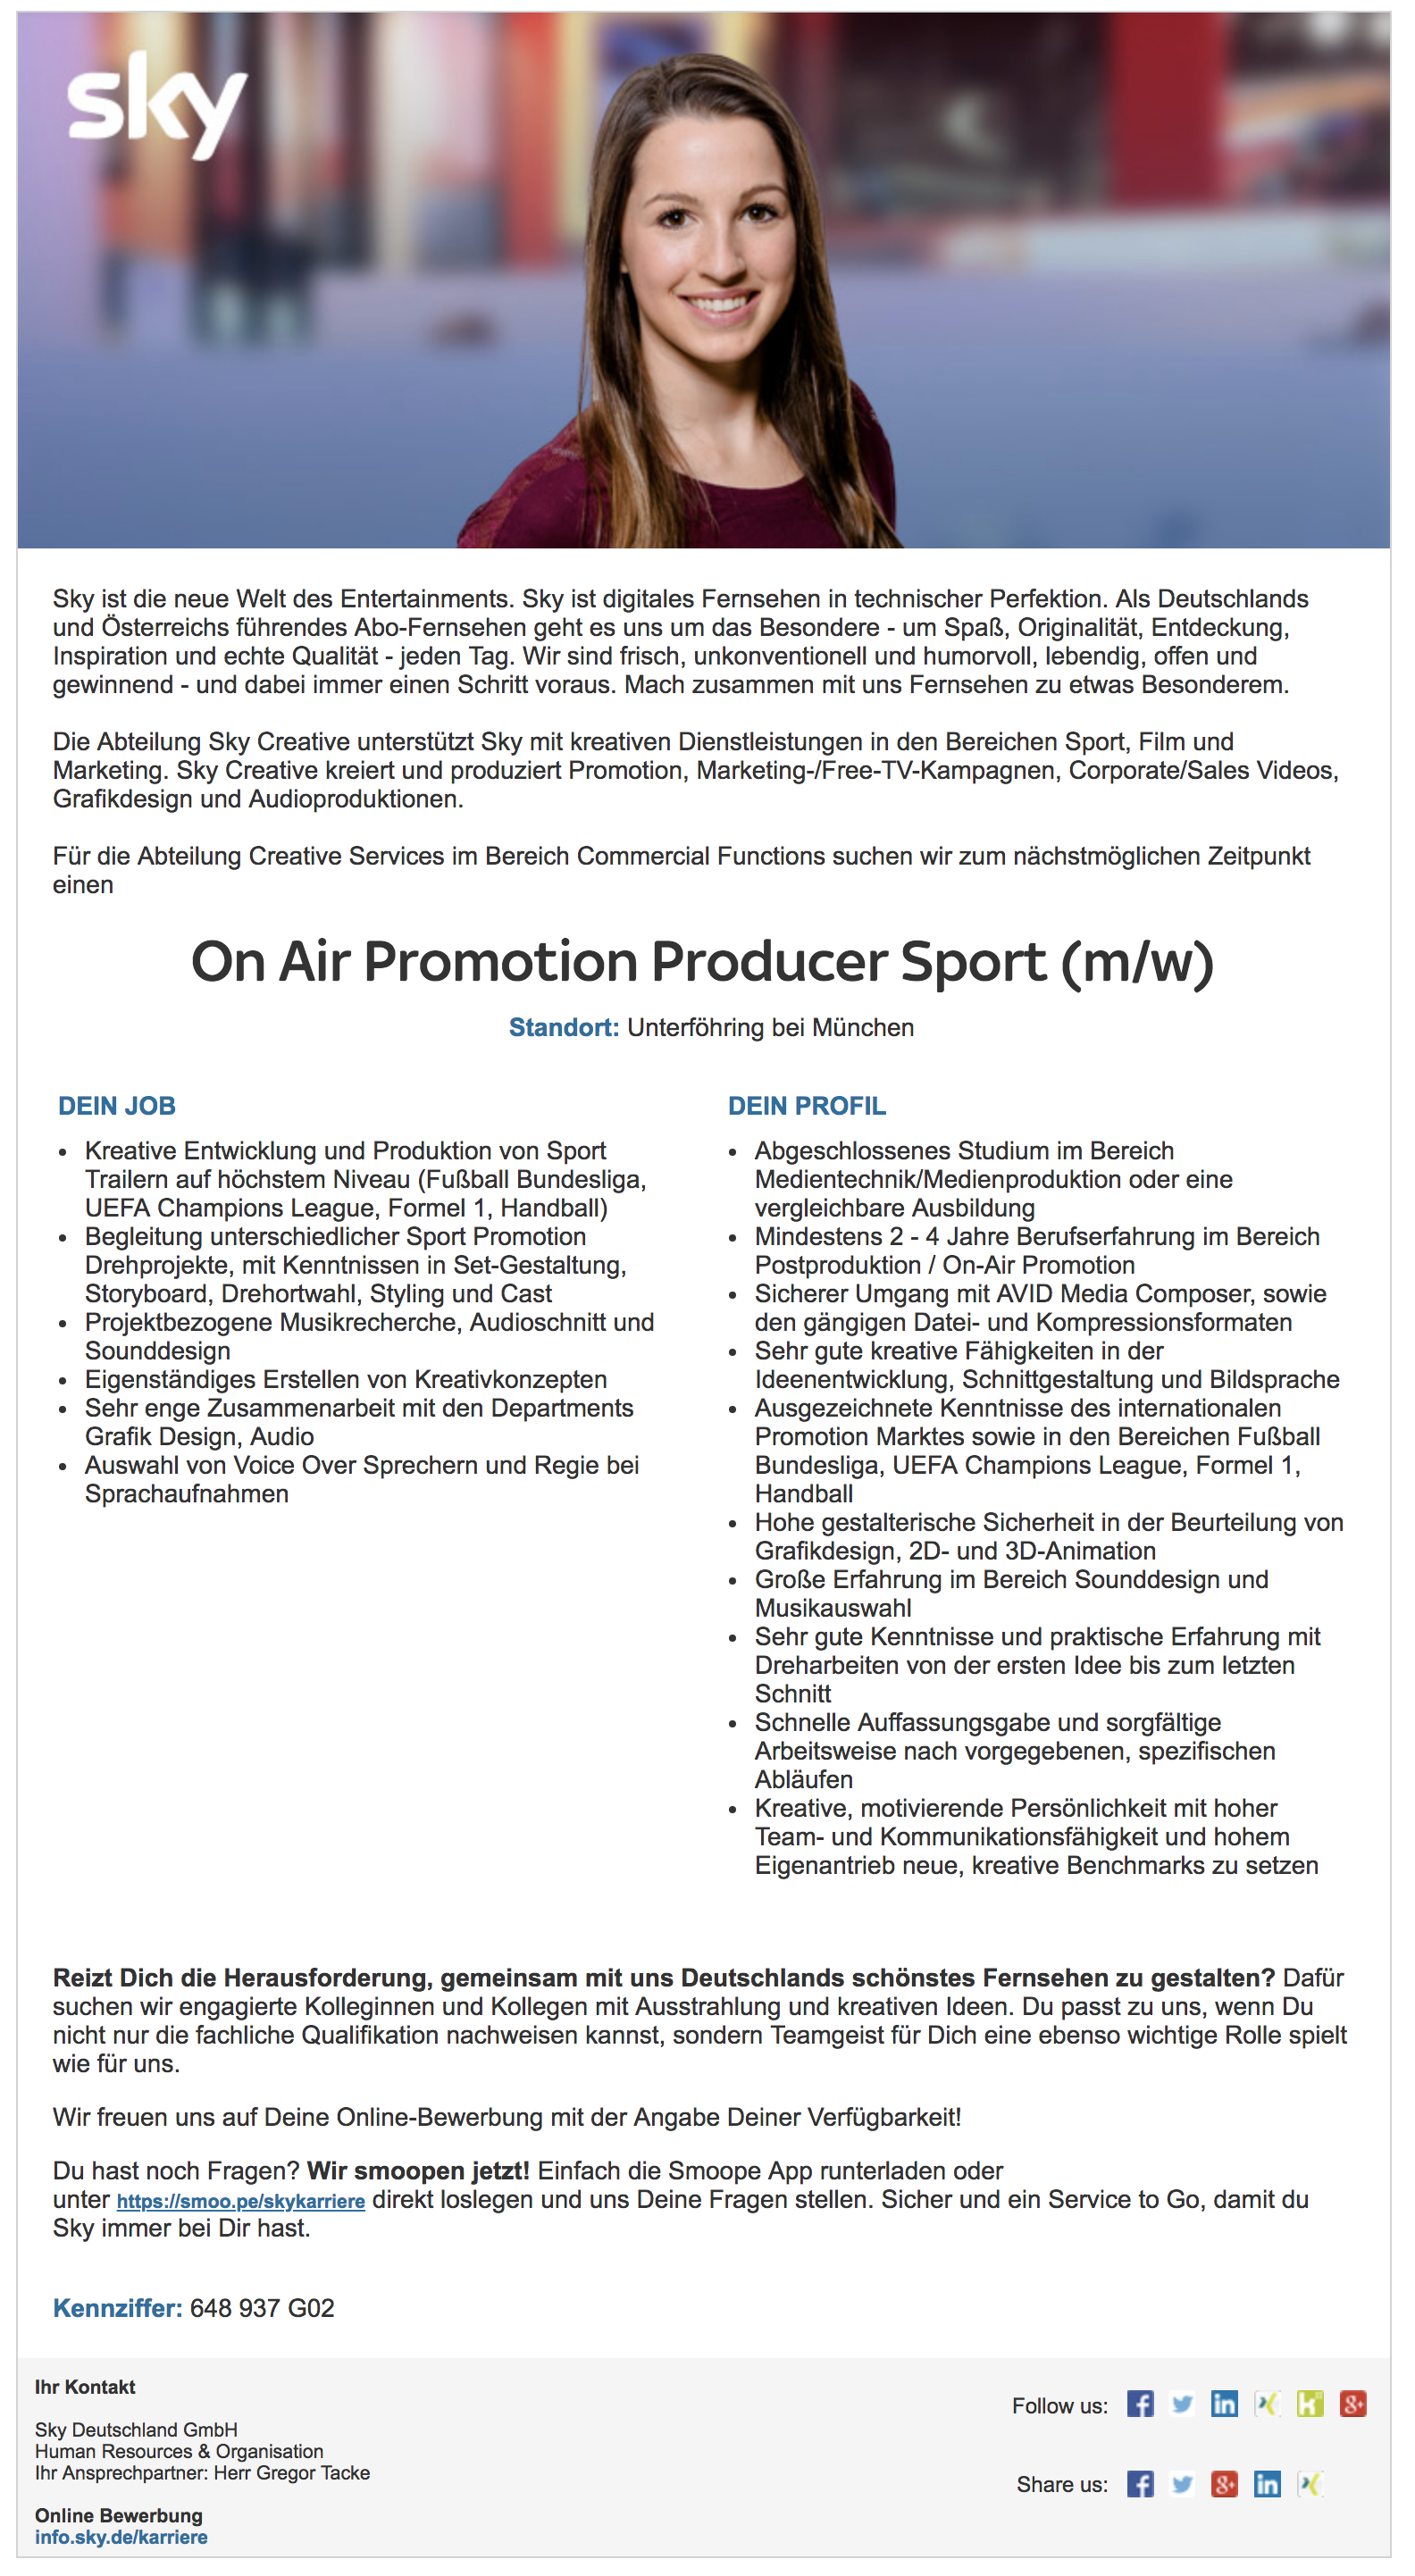 On Air Promotion Producer Sport (m/w)